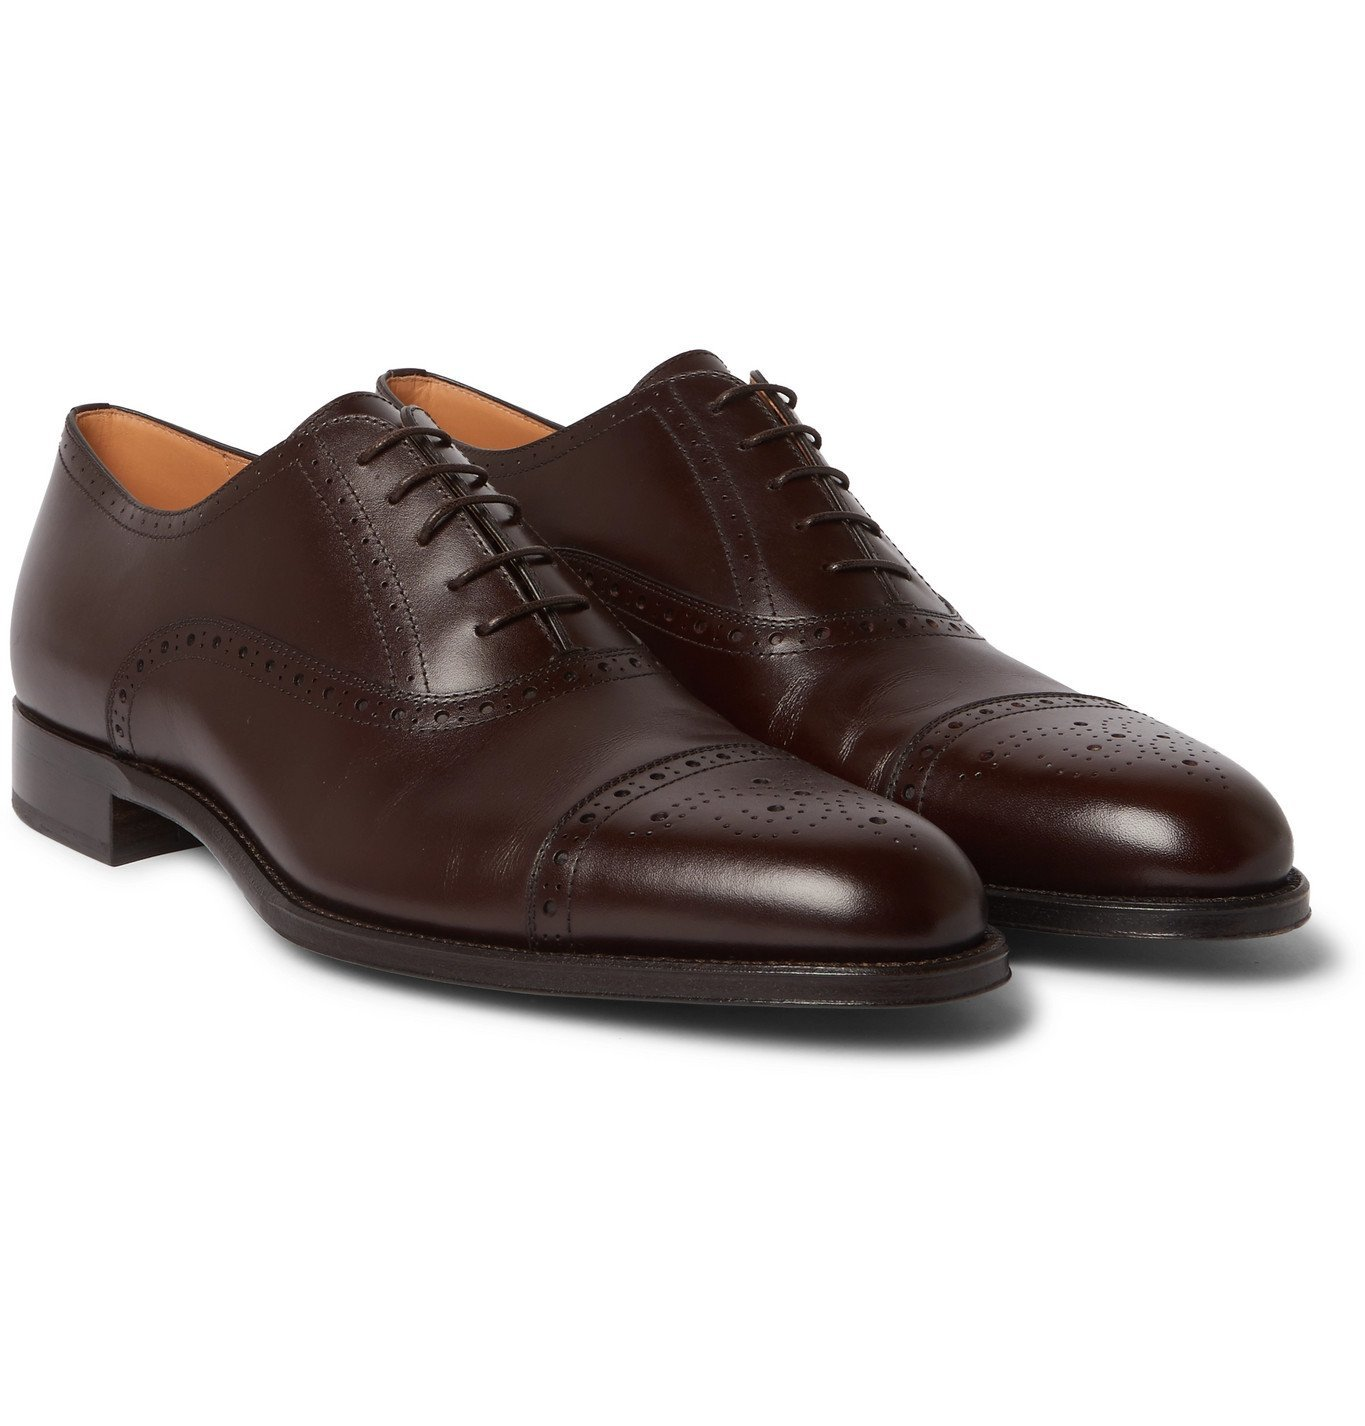 Dunhill - Kensington Leather Oxford Brogues - Brown